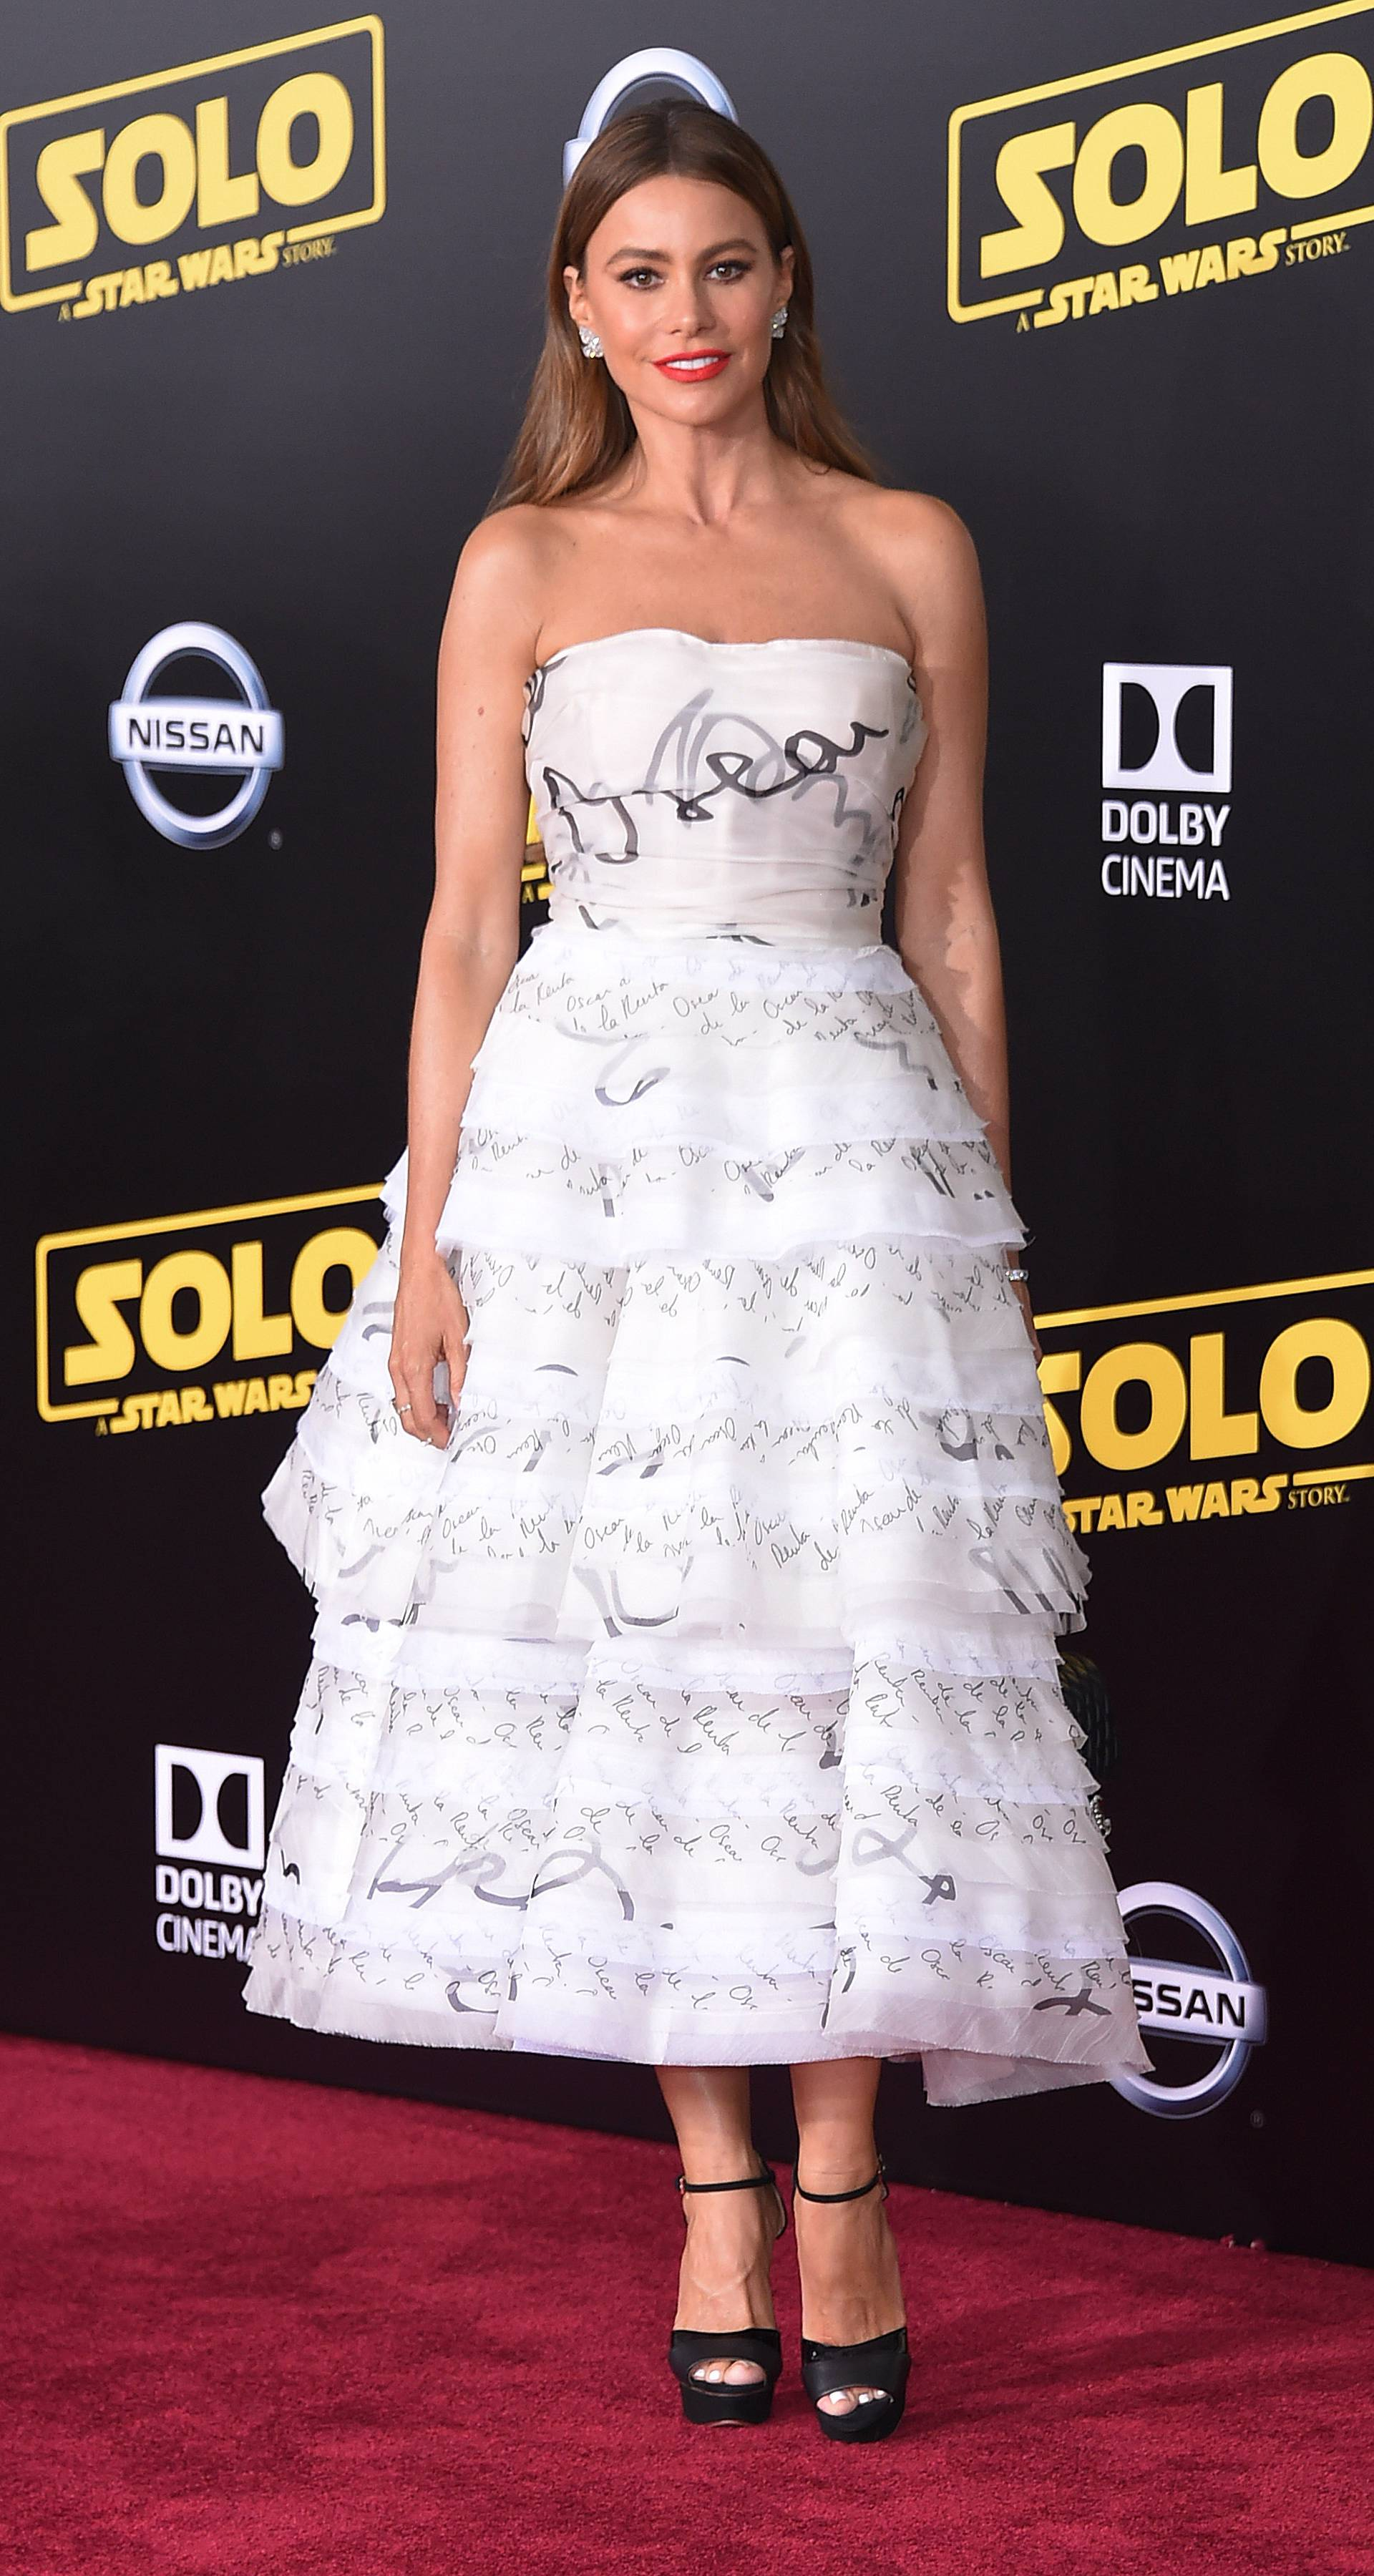 'Solo: A Star War Story' Premiere - Los Angeles